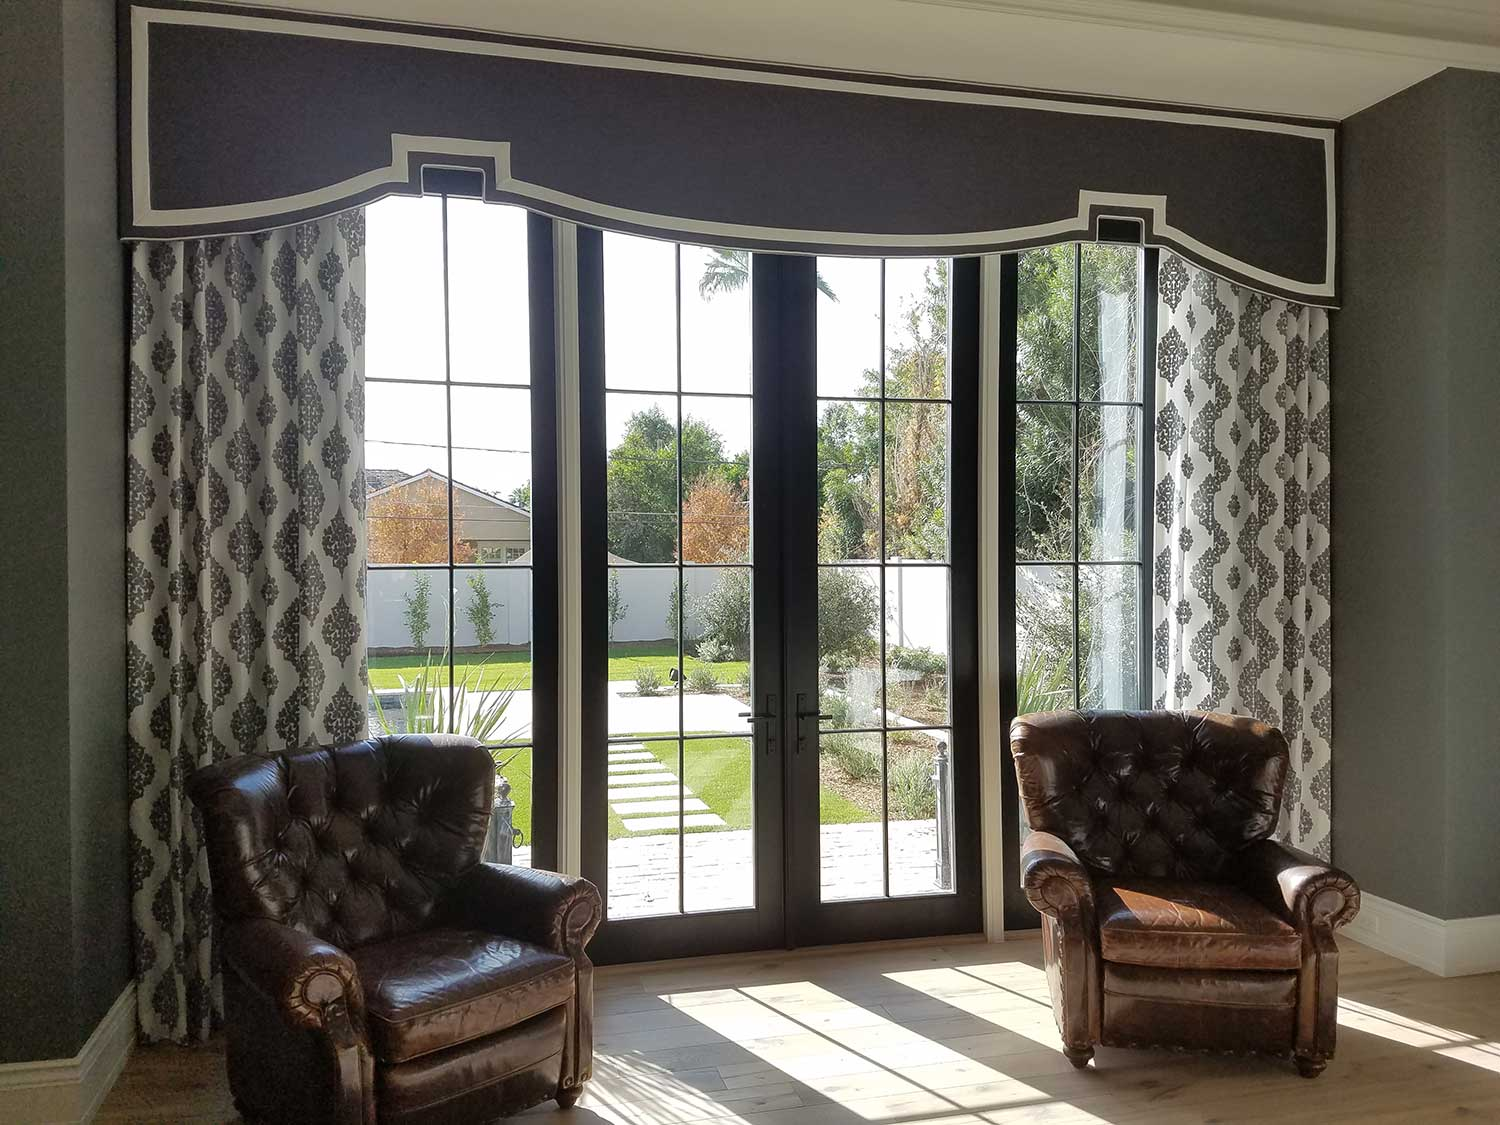 How to care for your curtains in Gilbert - Cornice Box with drapes over large french windows in the living room